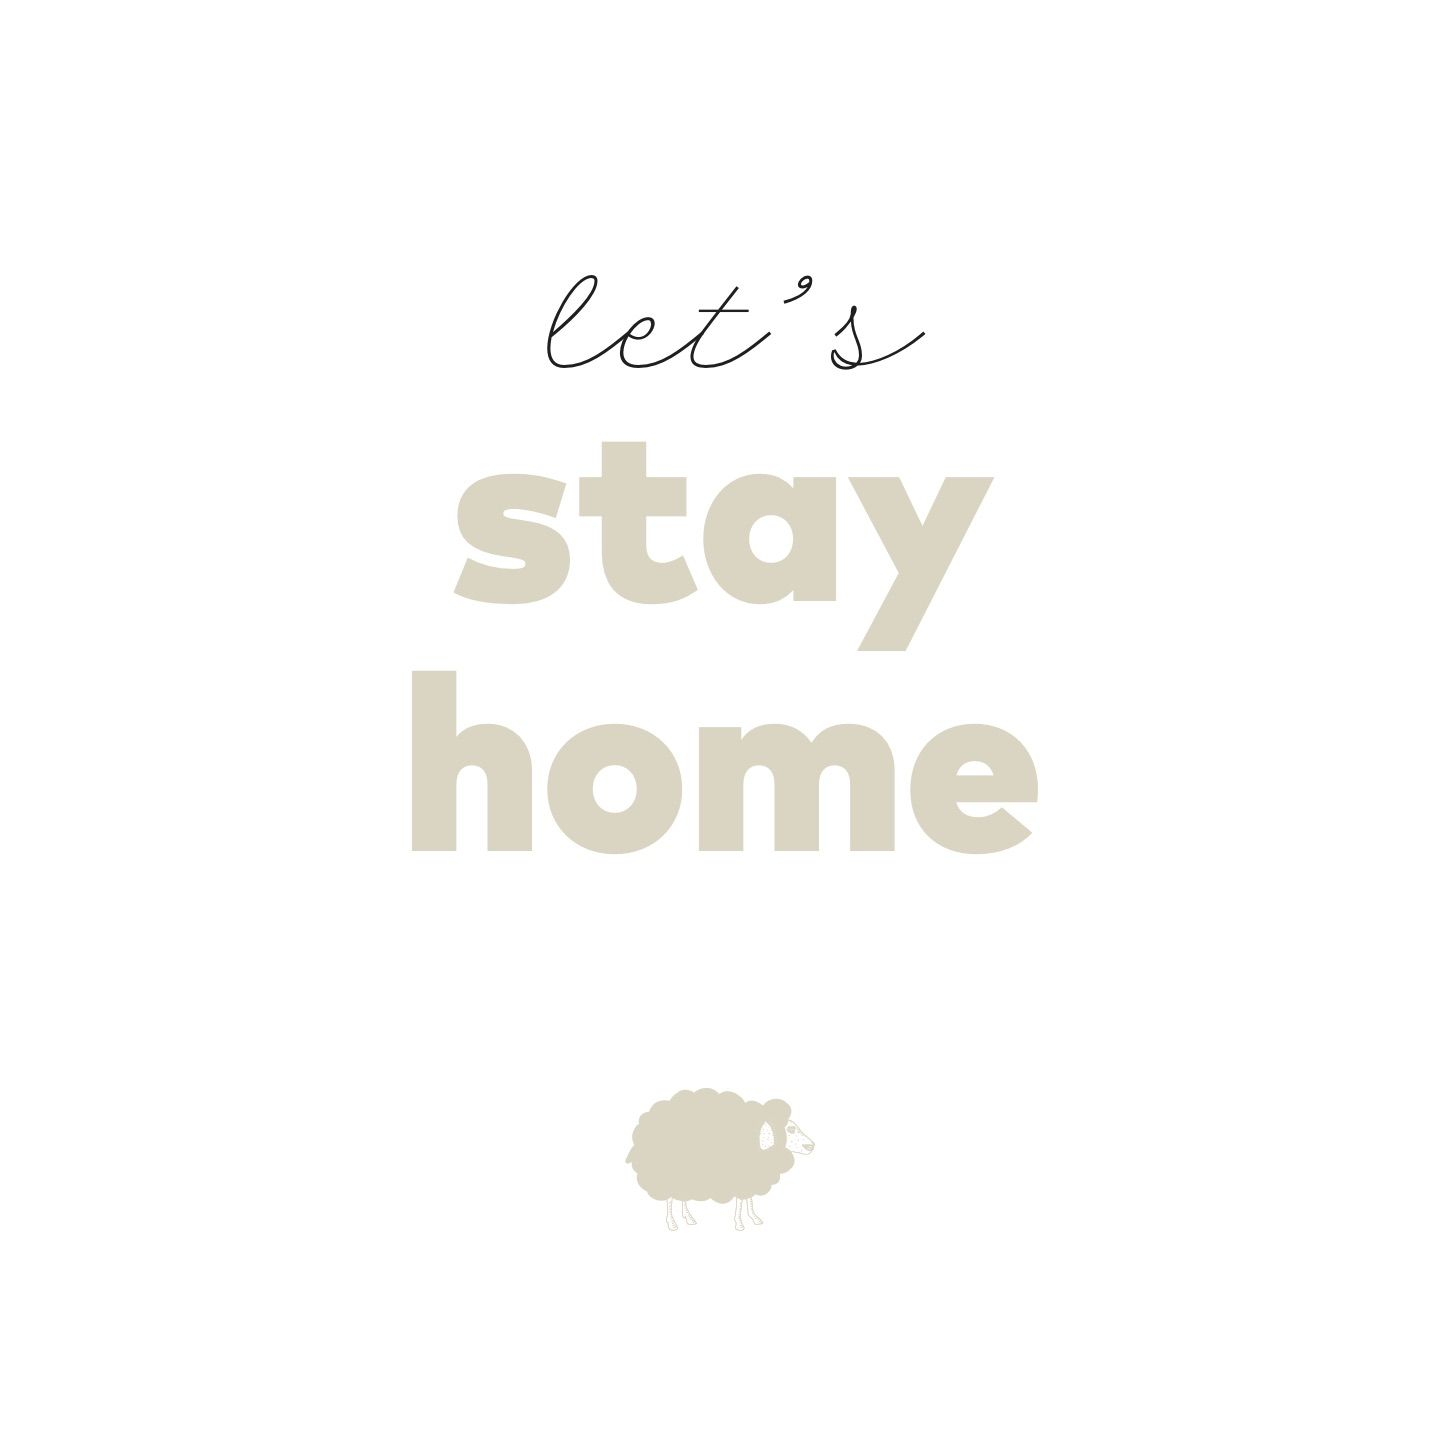 let's stay home #babyquotes #mymamaproject #gianlisa #mymamabag http://gianlisa.com/mymama-shop/